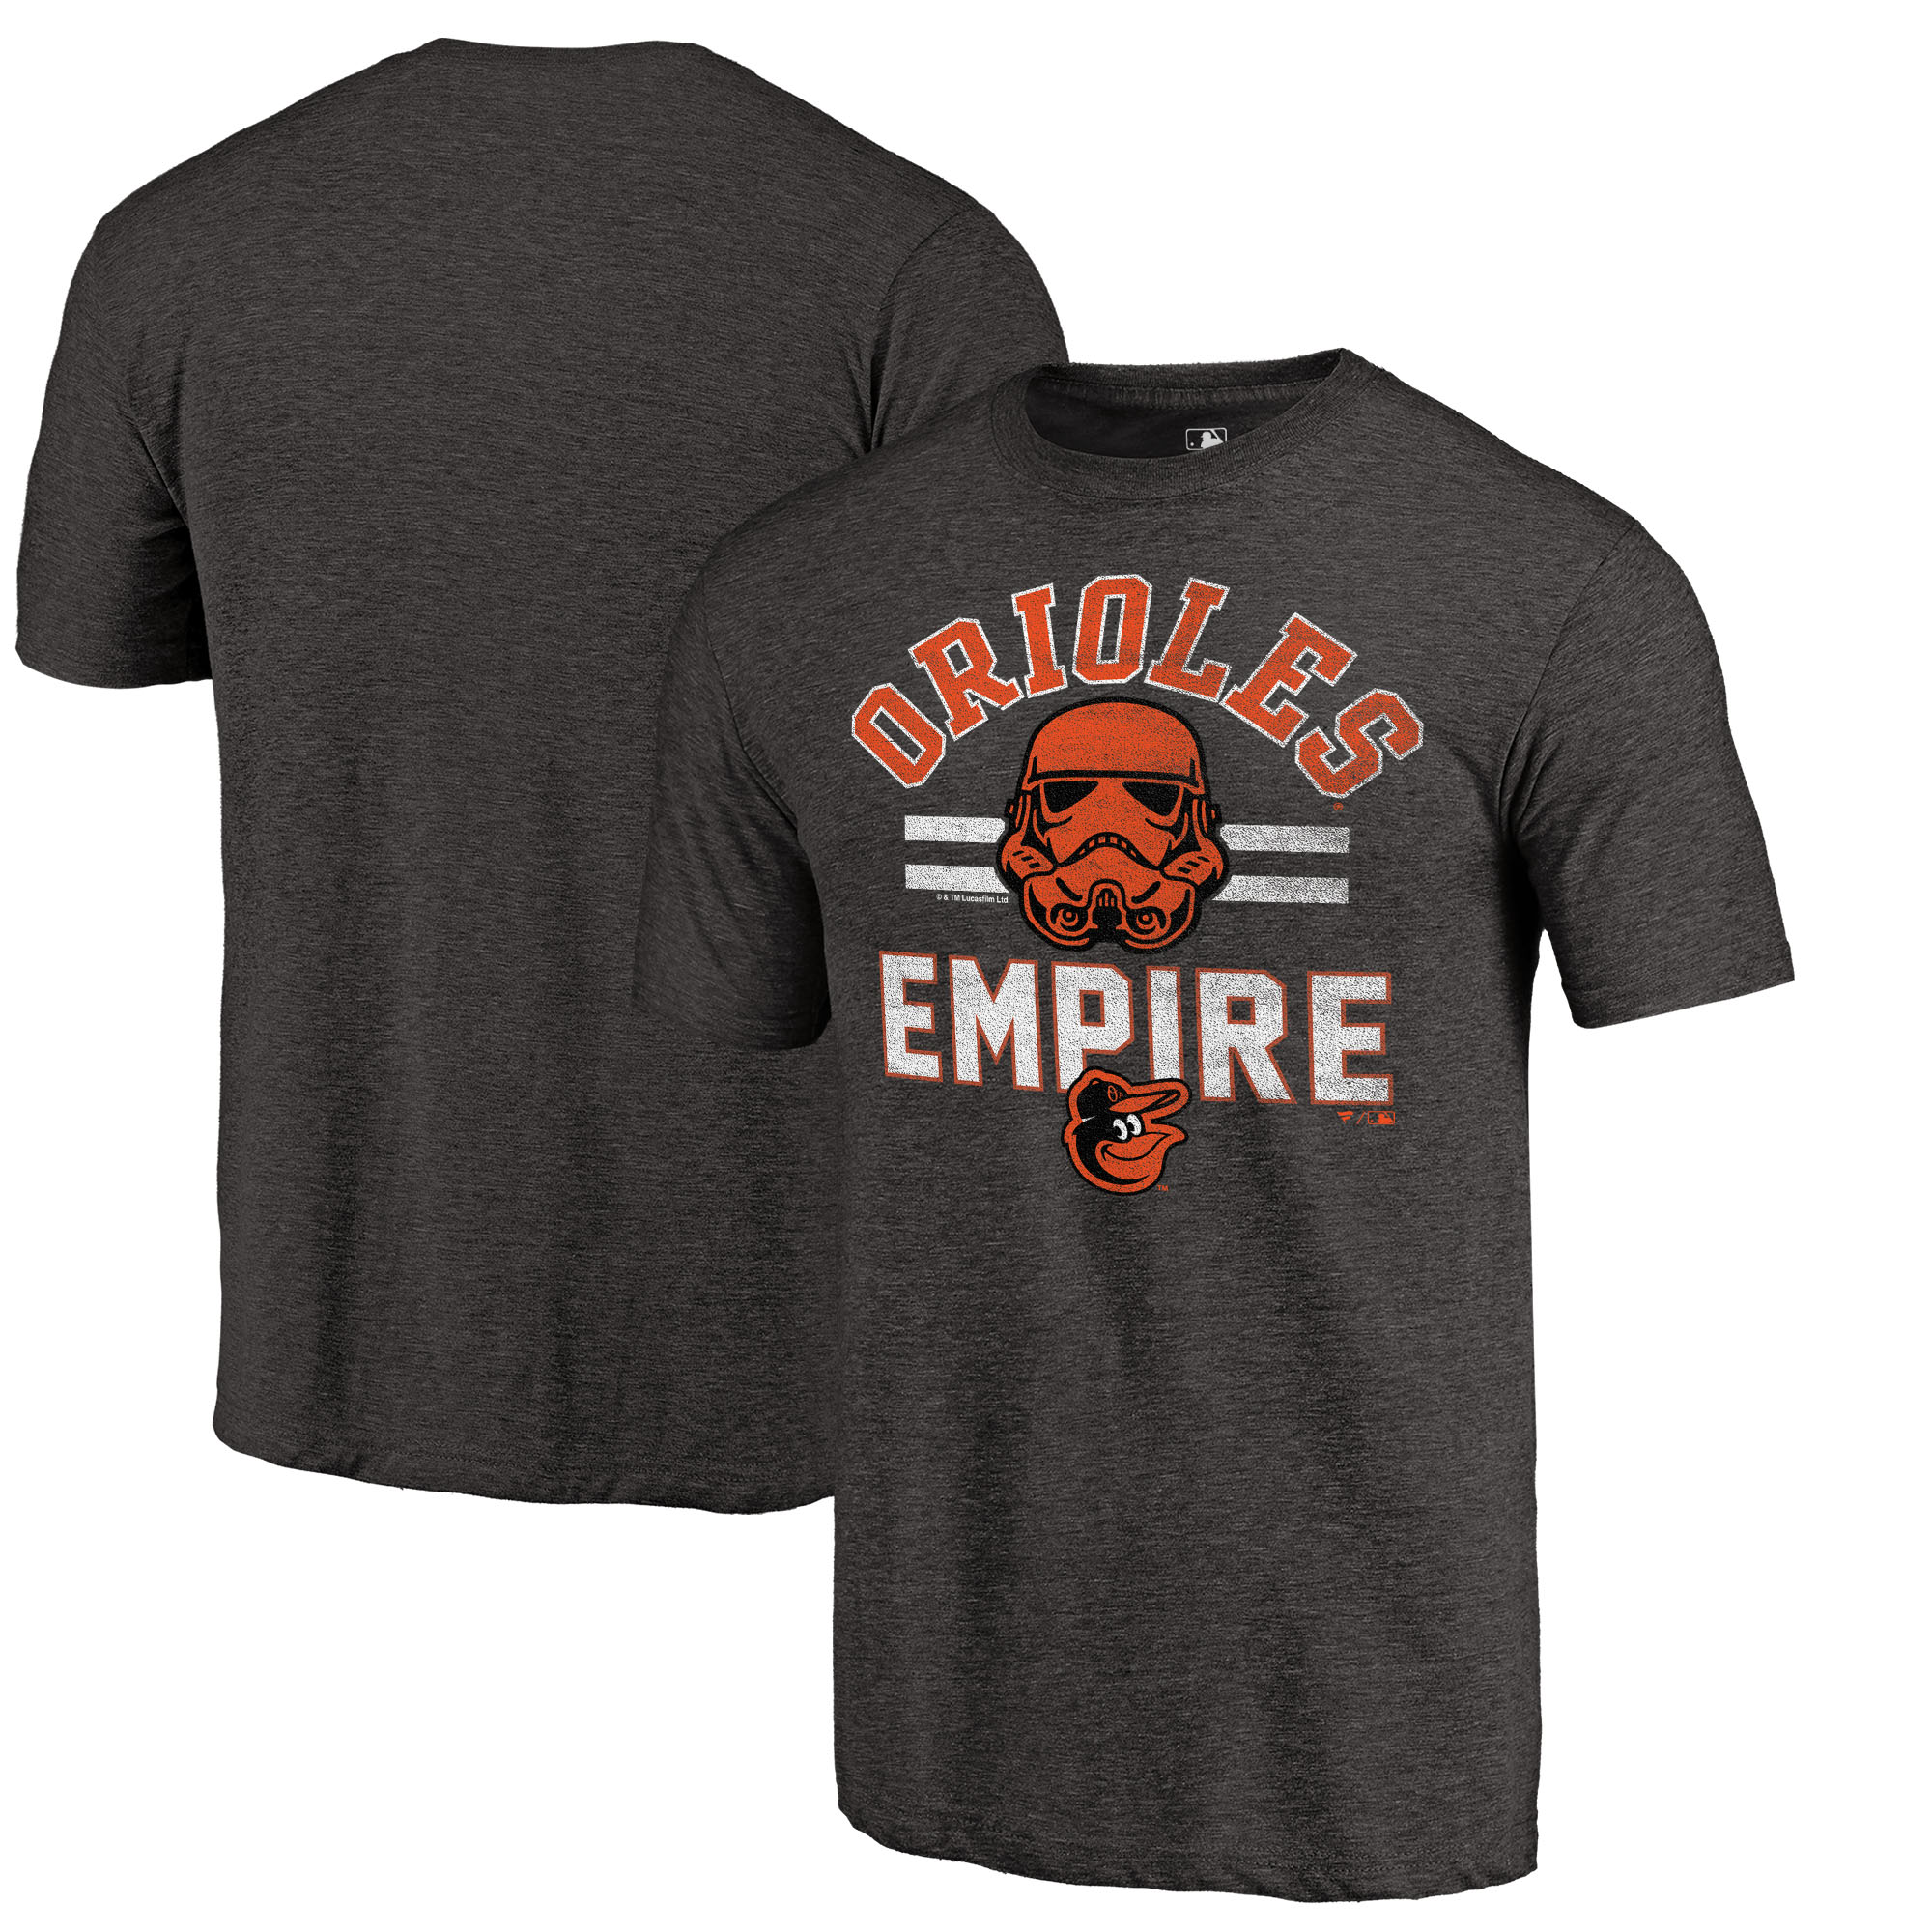 Baltimore Orioles Fanatics Branded MLB Star Wars Empire Tri-Blend T-Shirt - Black